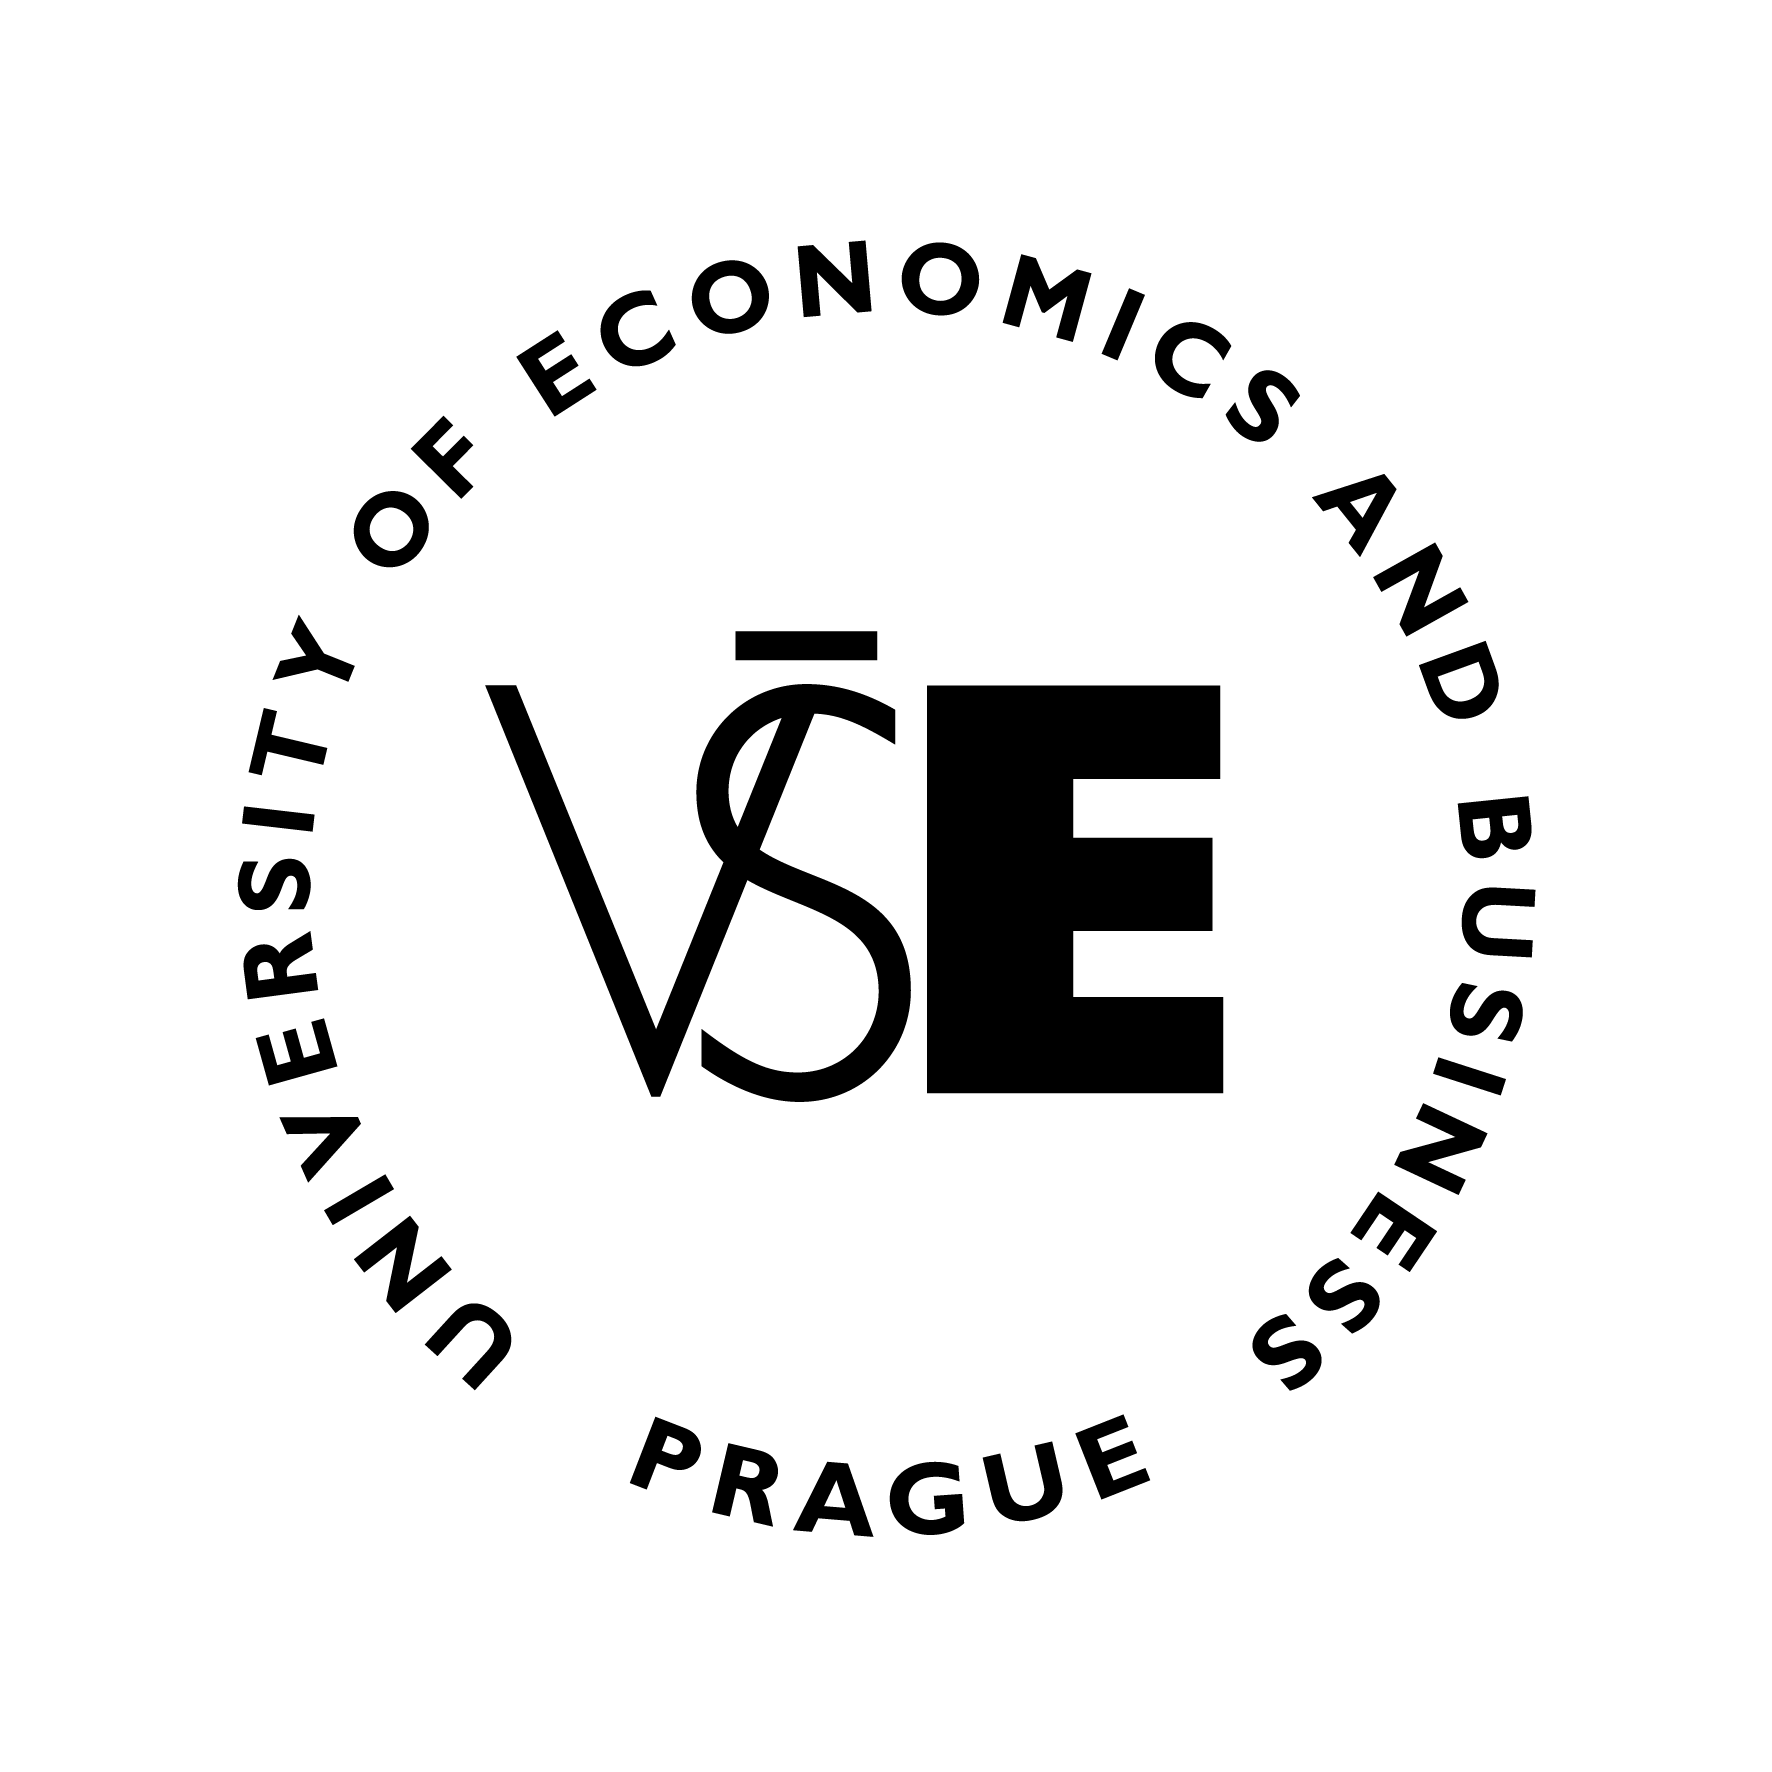 VŠE - logo black - circle - English